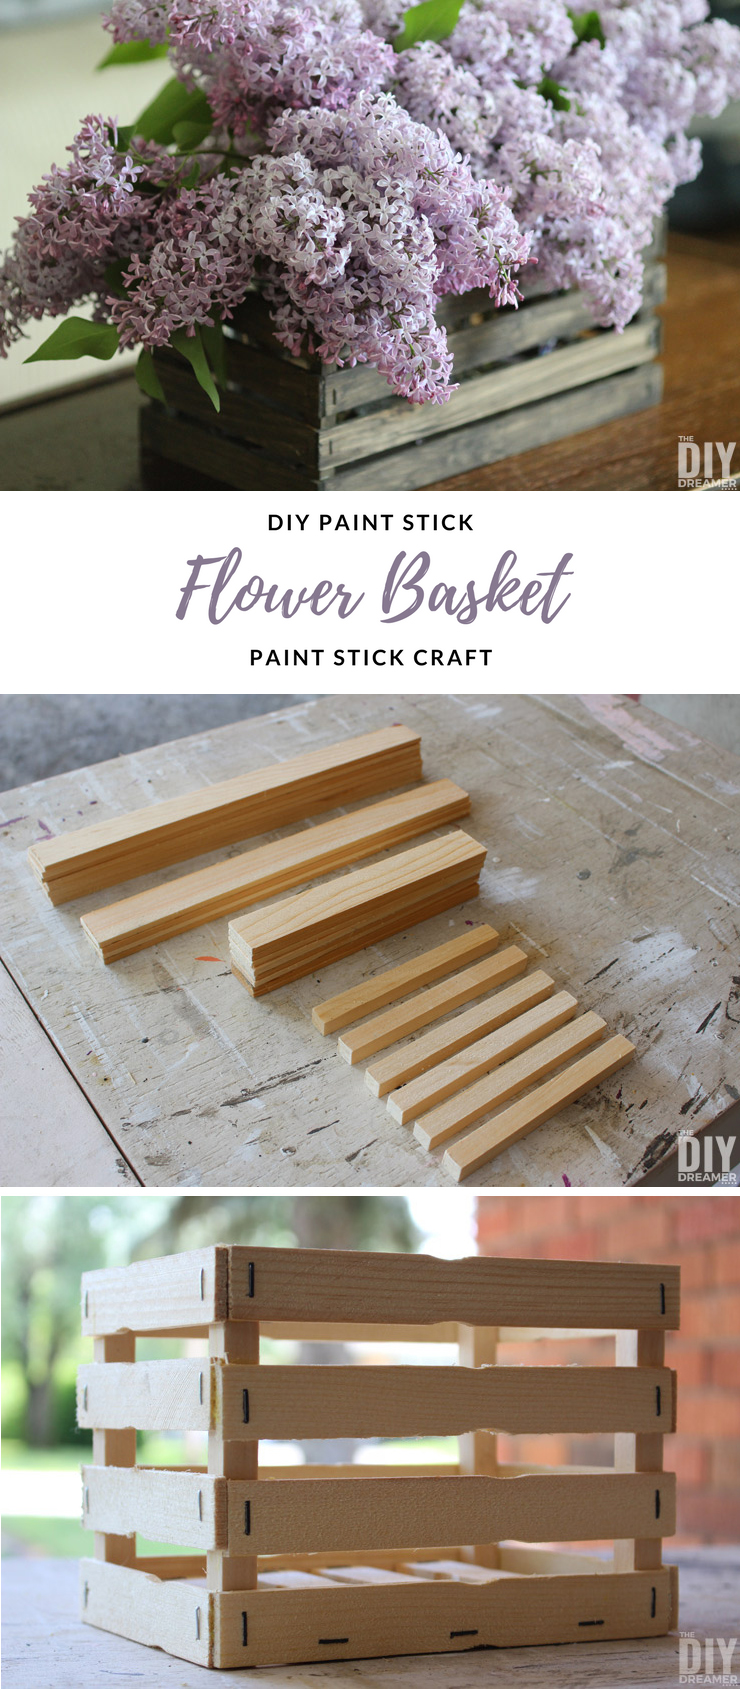 DIY Paint Stick Mason Jar Caddy. Beautiful DIY Paint Stick Flower Basket. Learn how to build a flower basket using paint sticks. Also includes DIY instructions to make smaller version that holds 2 mason jars. #paintstick #paintstickcraft #flowerbasket #masonjar